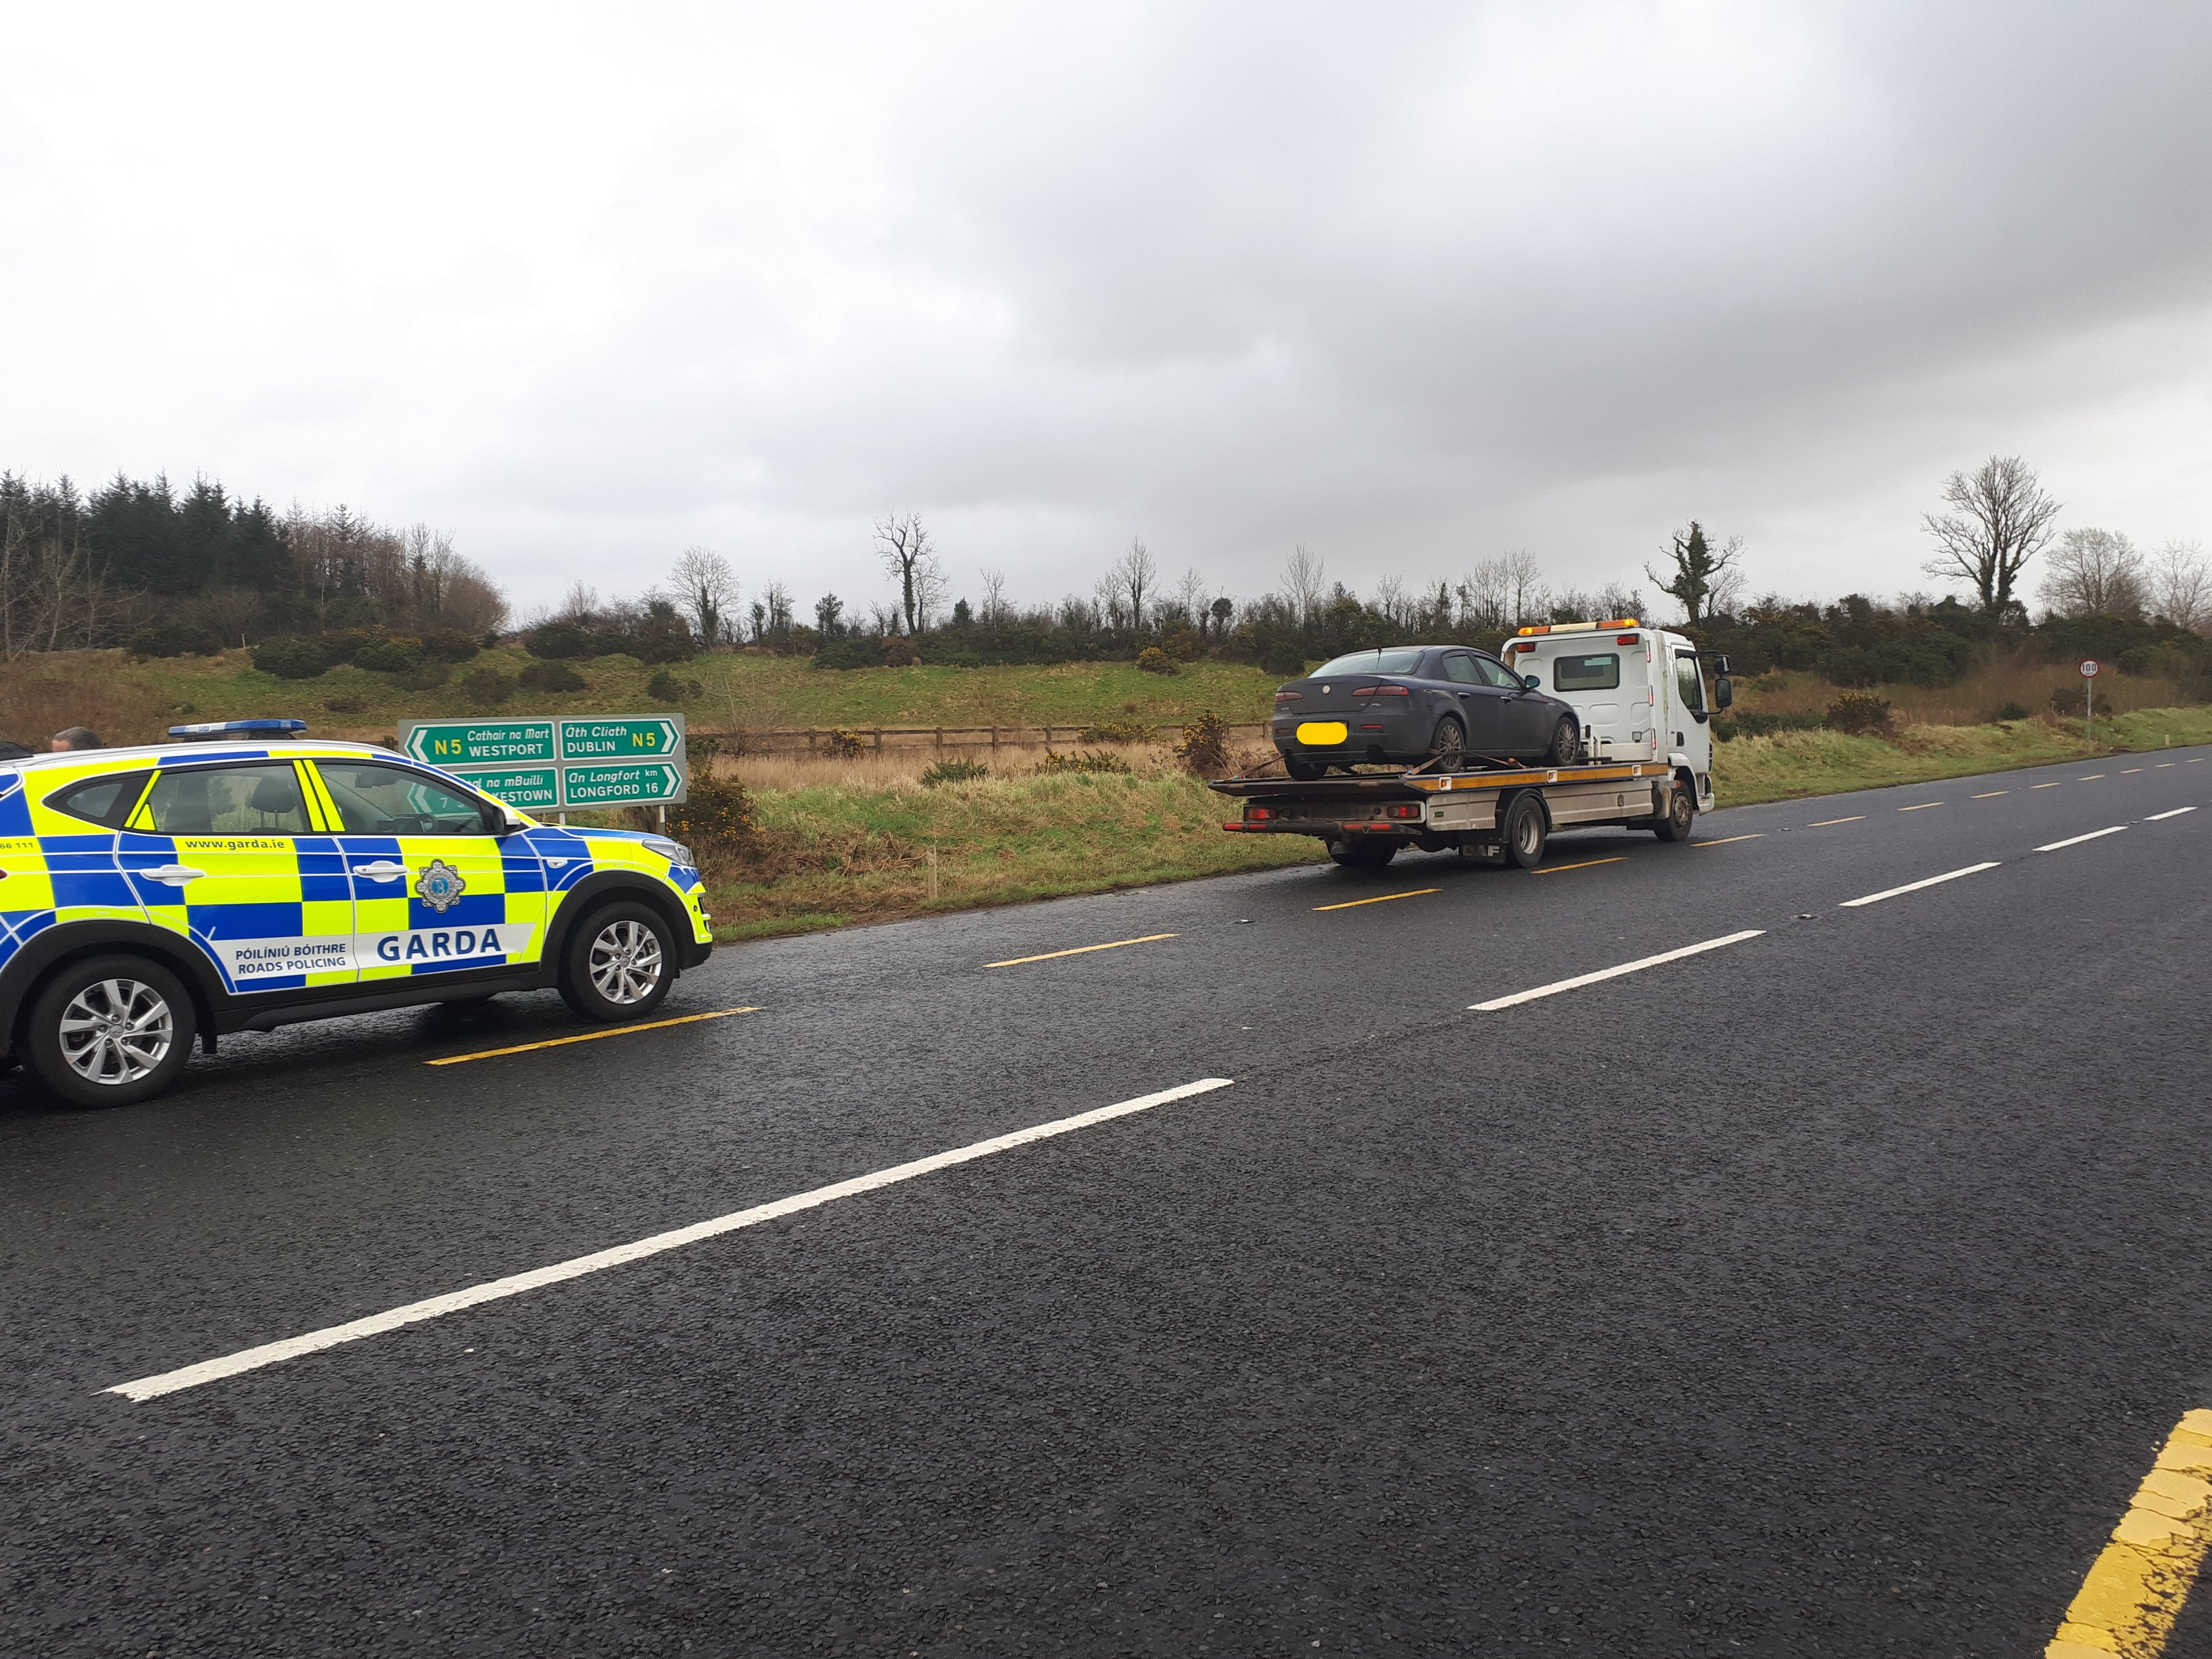 2021 Roscommon Christmas Walk Midwest Radio Car Detained In Roscommon For No Insurance After Being Stopped For Speeding